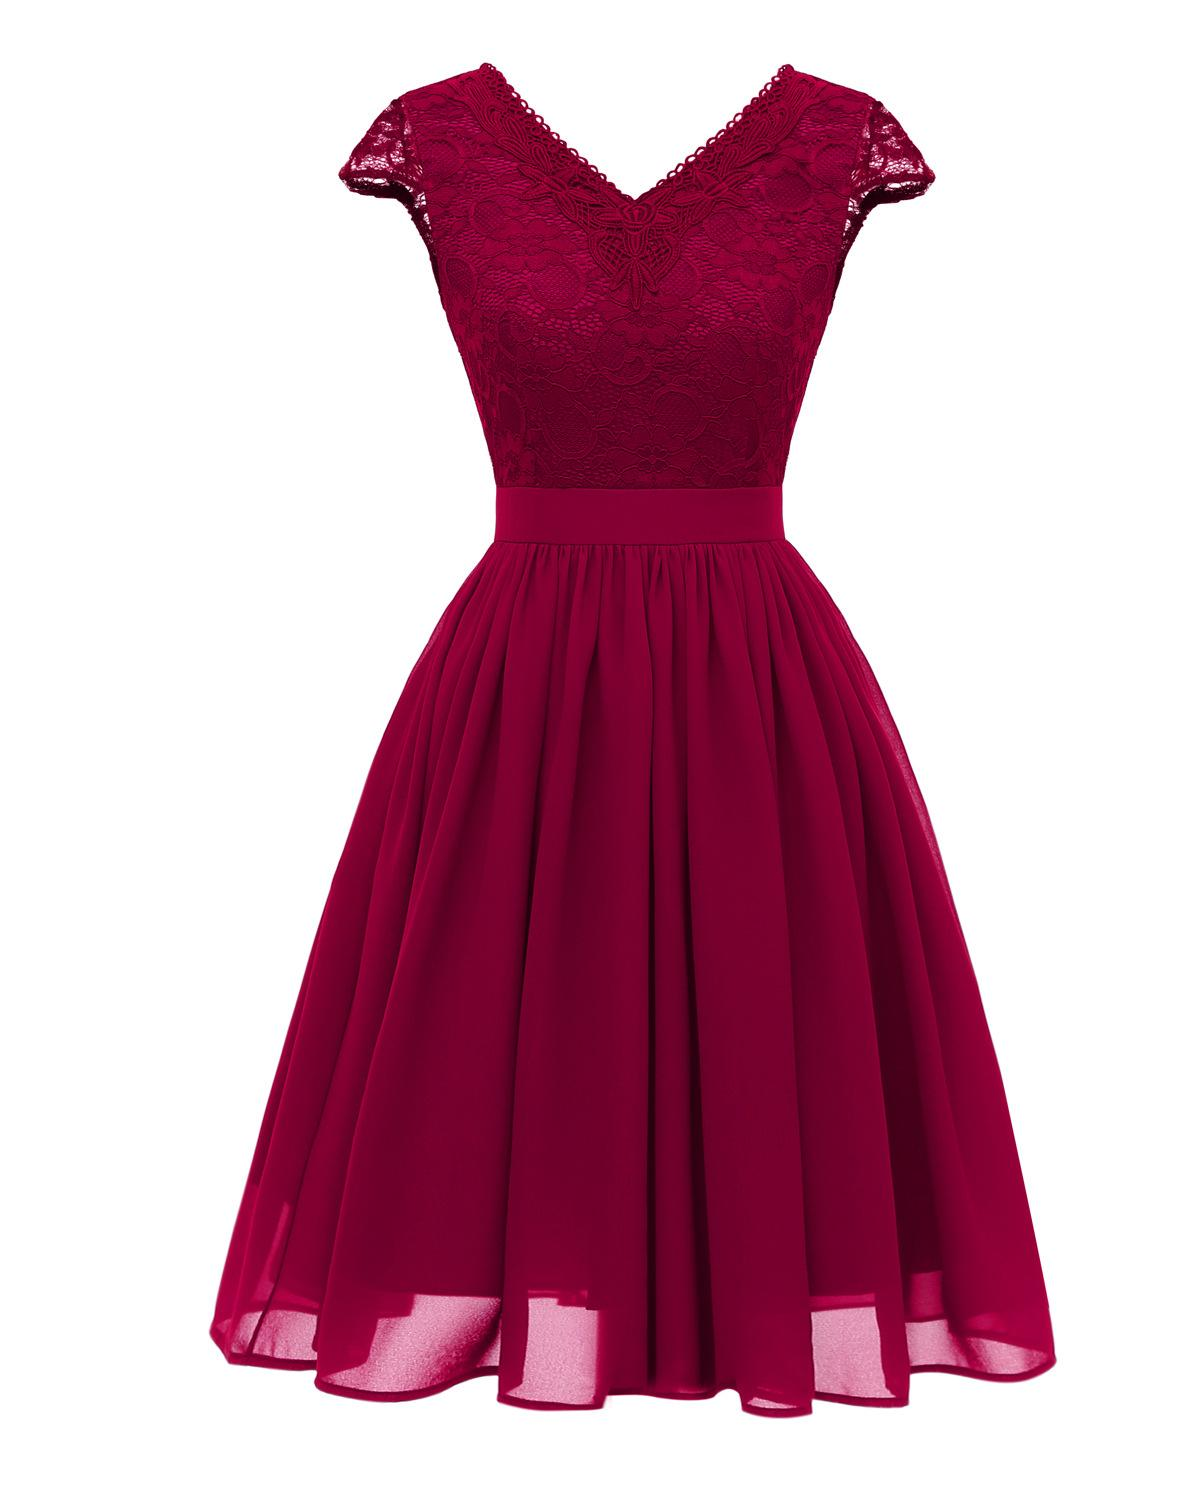 V-neck Burgundy Lace   Cocktail     Dresses   Chiffon vestidos elegant Short Formal   Dress   party 2019 Homecoming   Dress